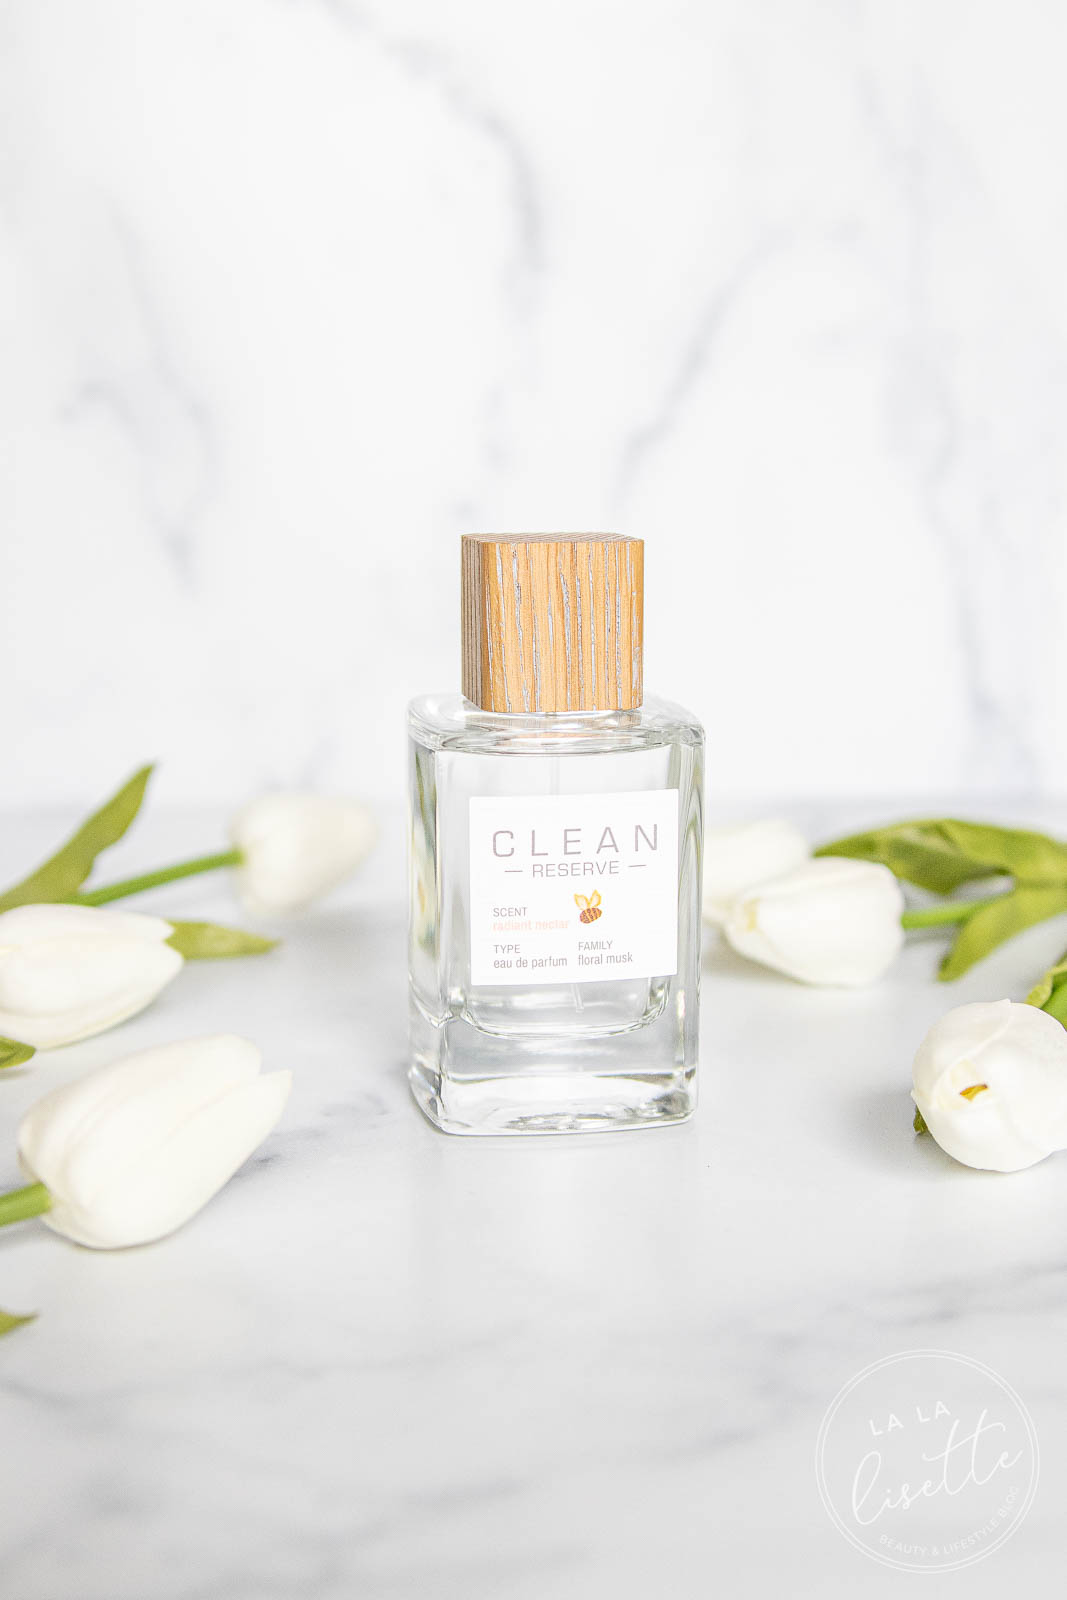 Clean Reserve Radiant Nectar clean perfume